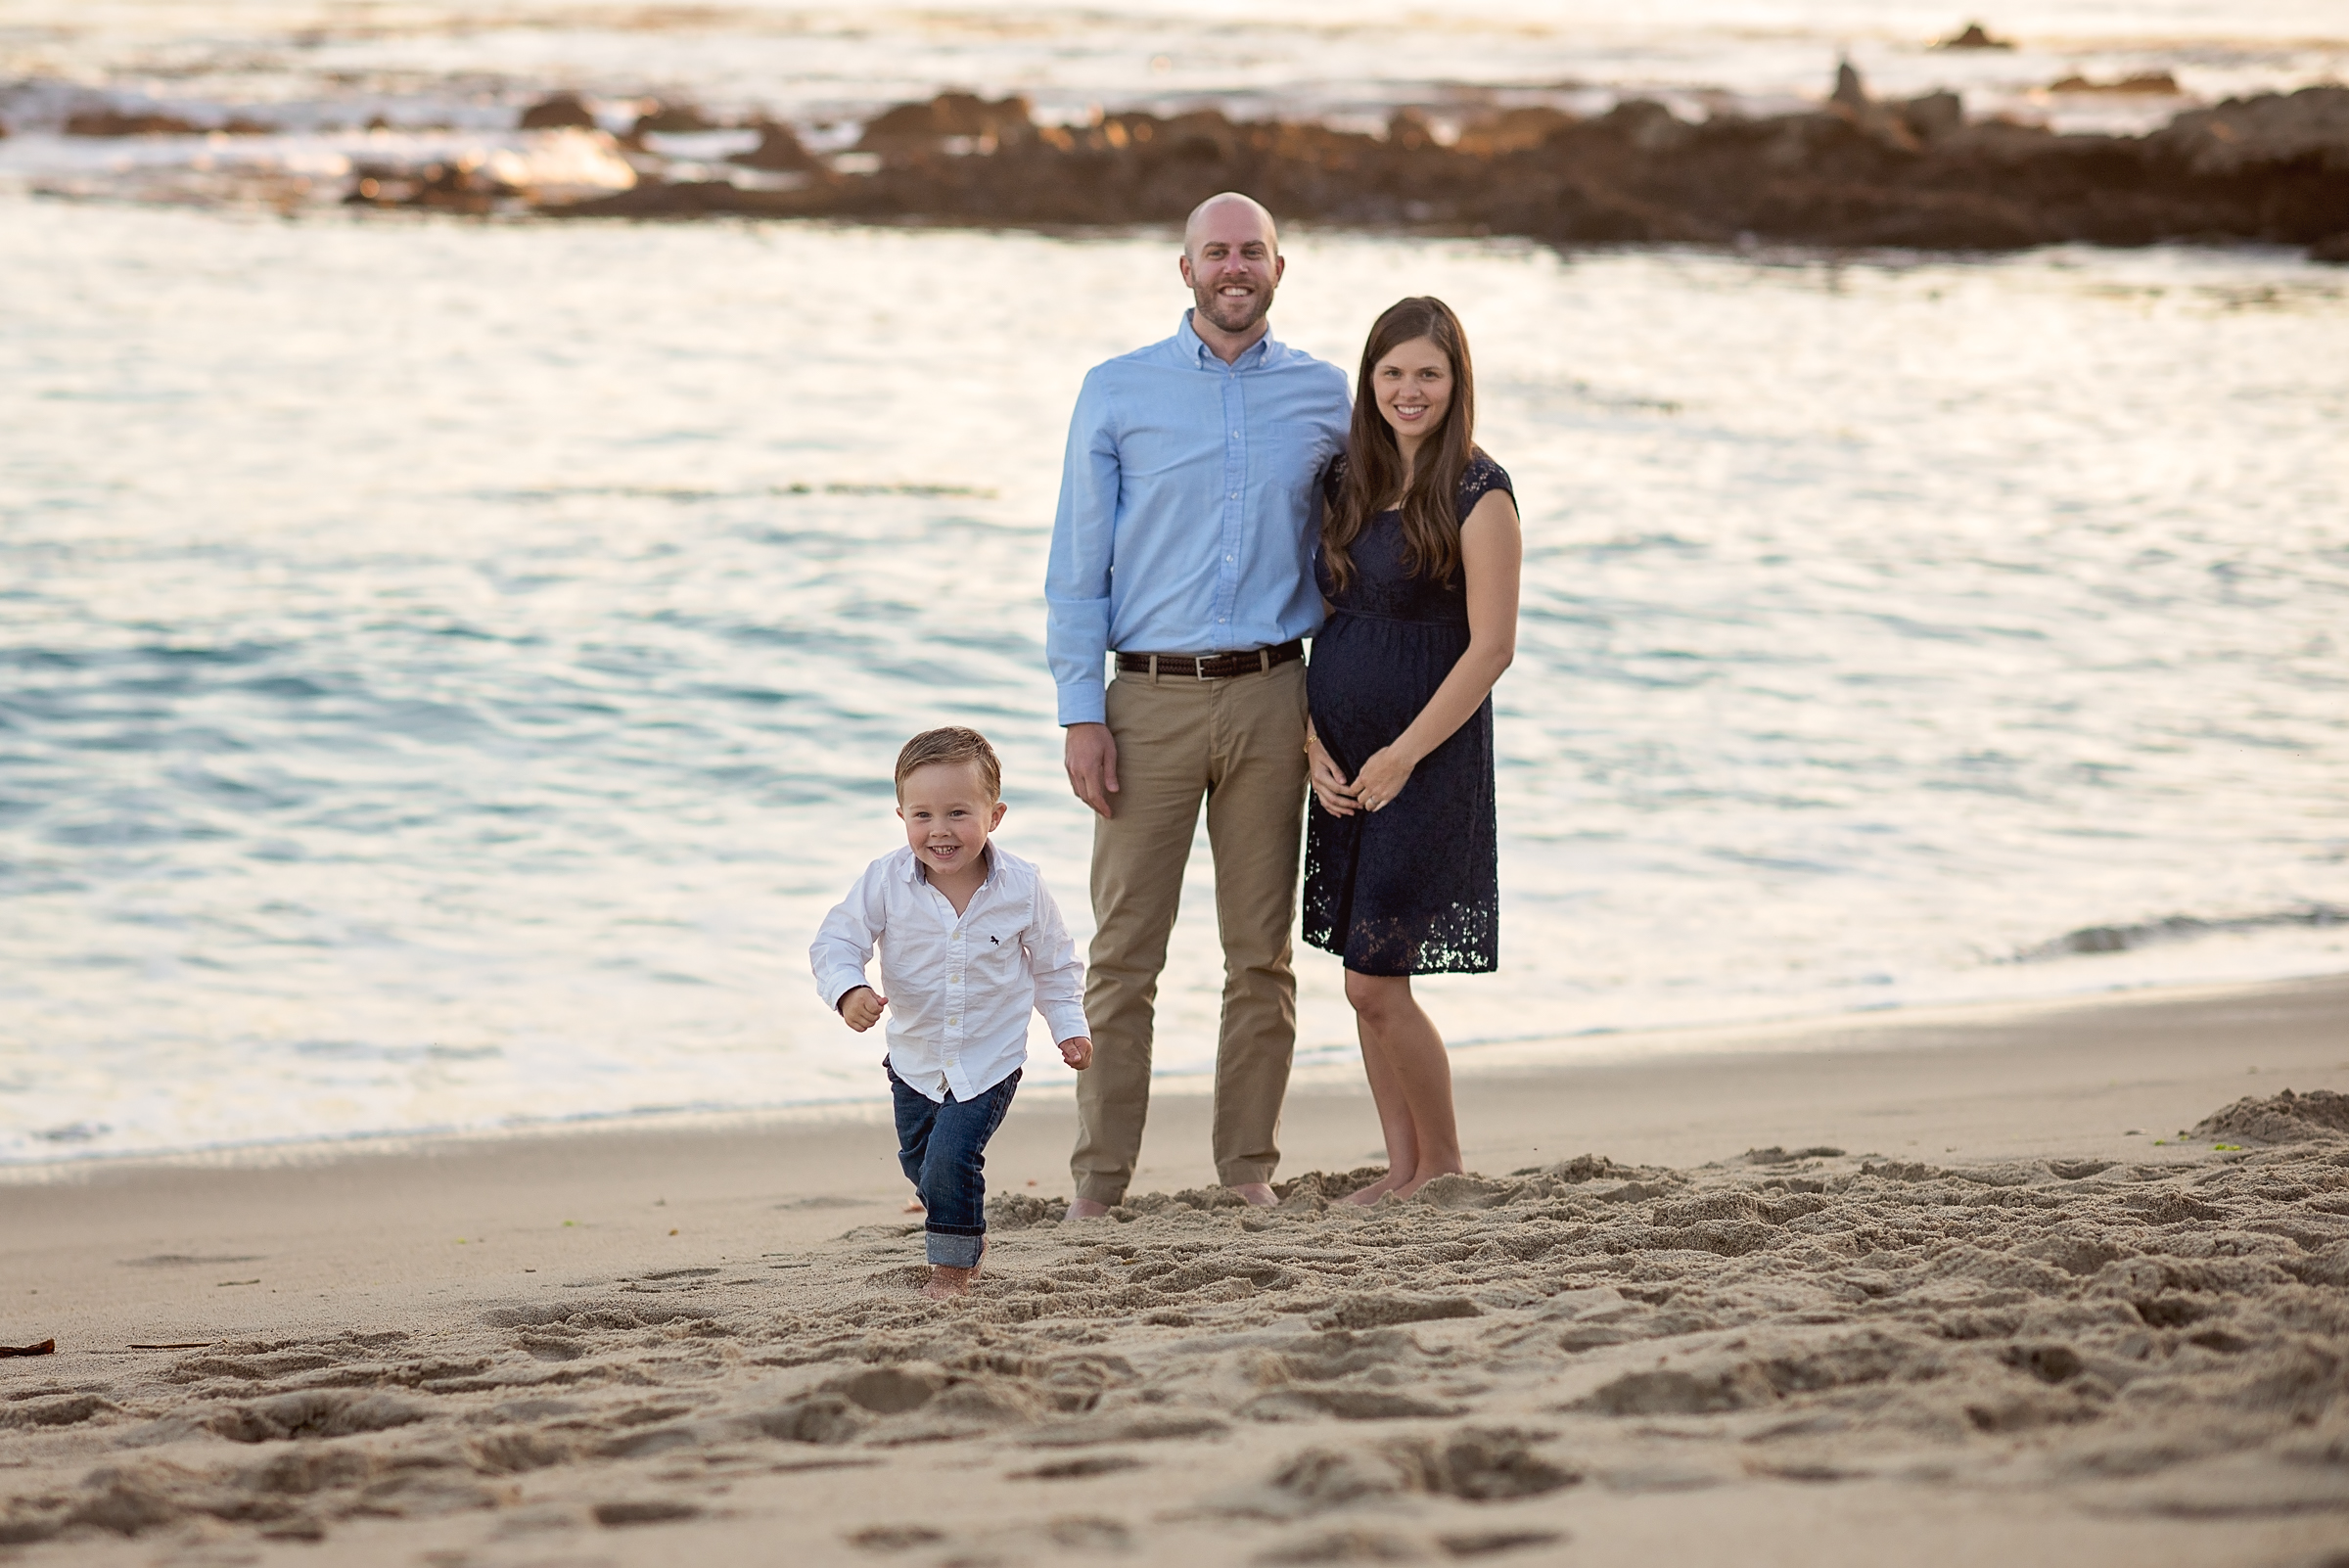 Sheryl Bjorn Photography, Monterey Beach Photographer